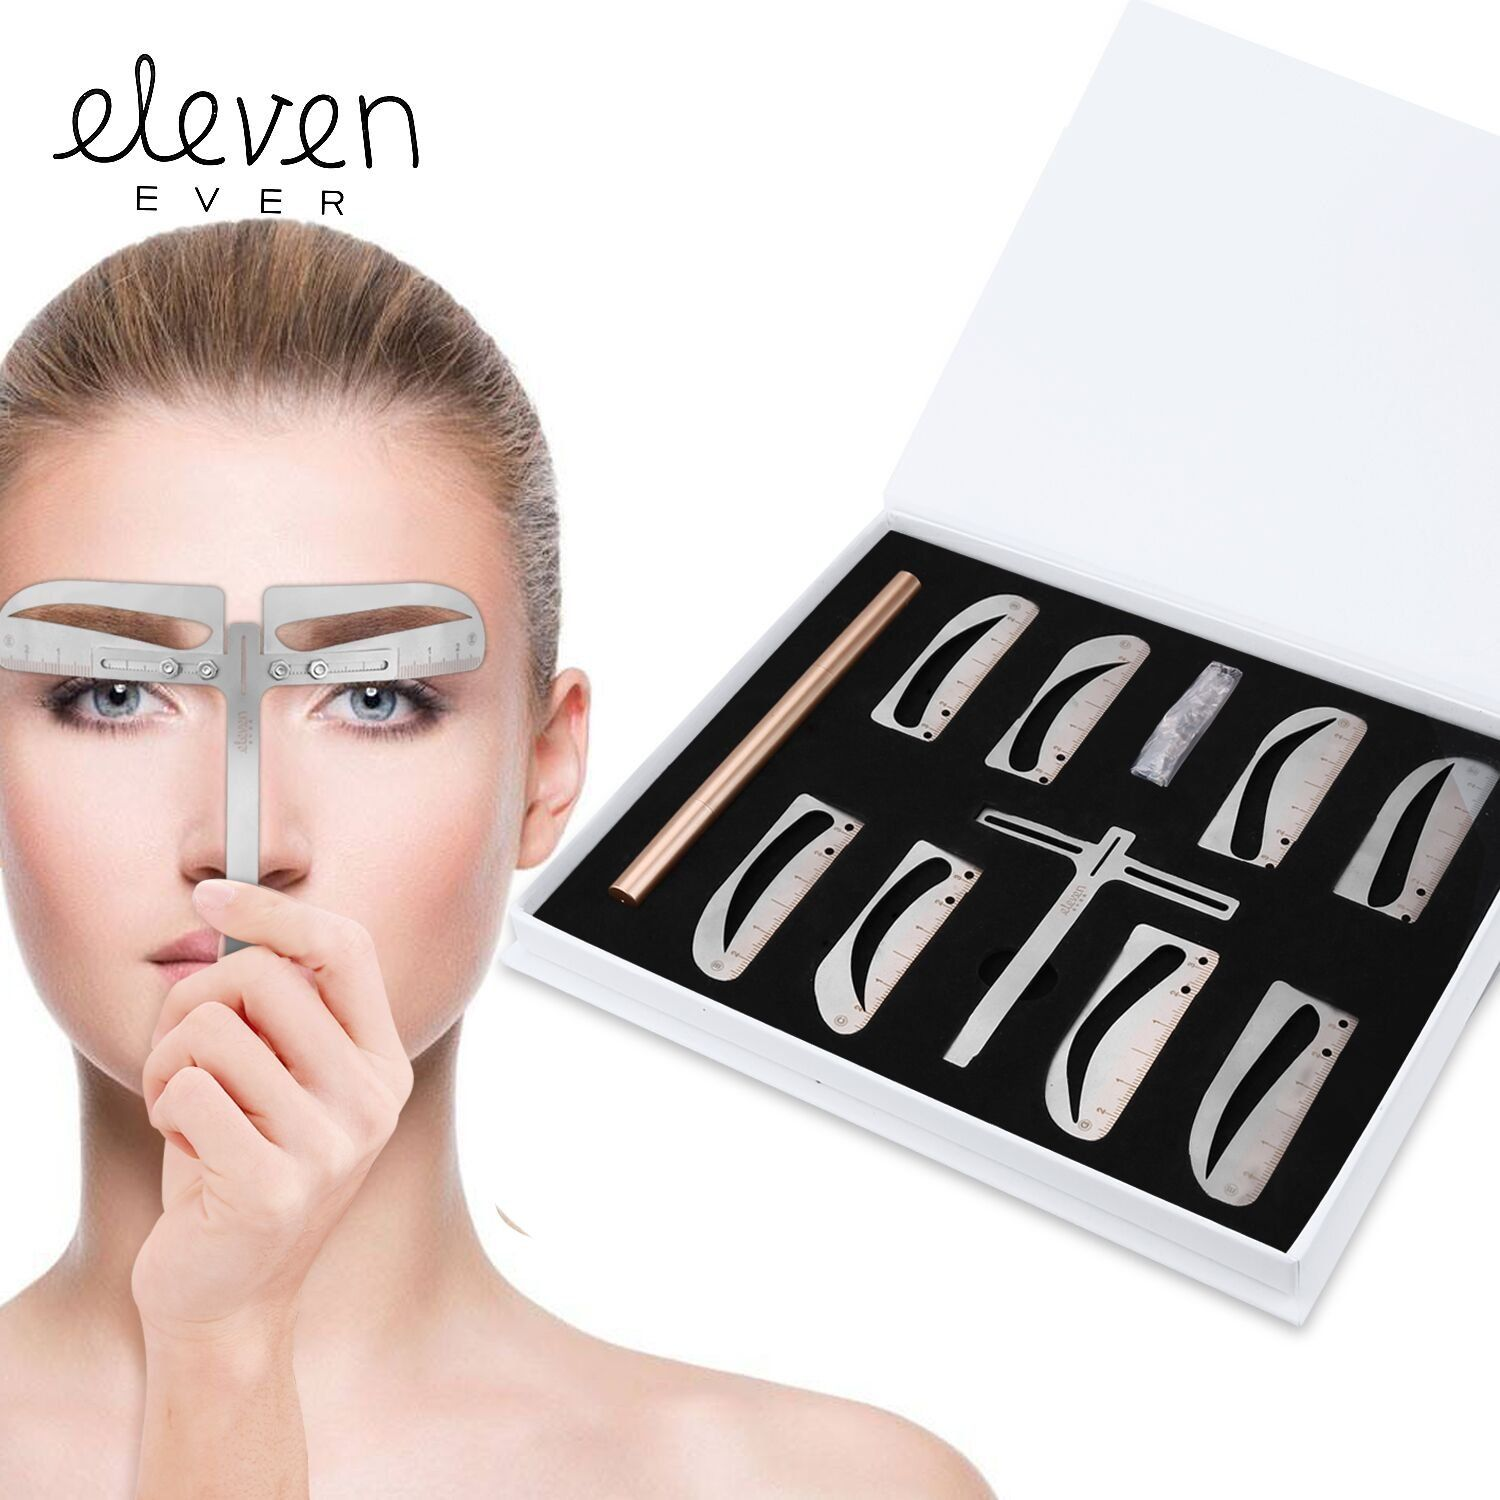 ELEVEN EVER Eyebrow Stencil Ruler kit Includes 4 Group